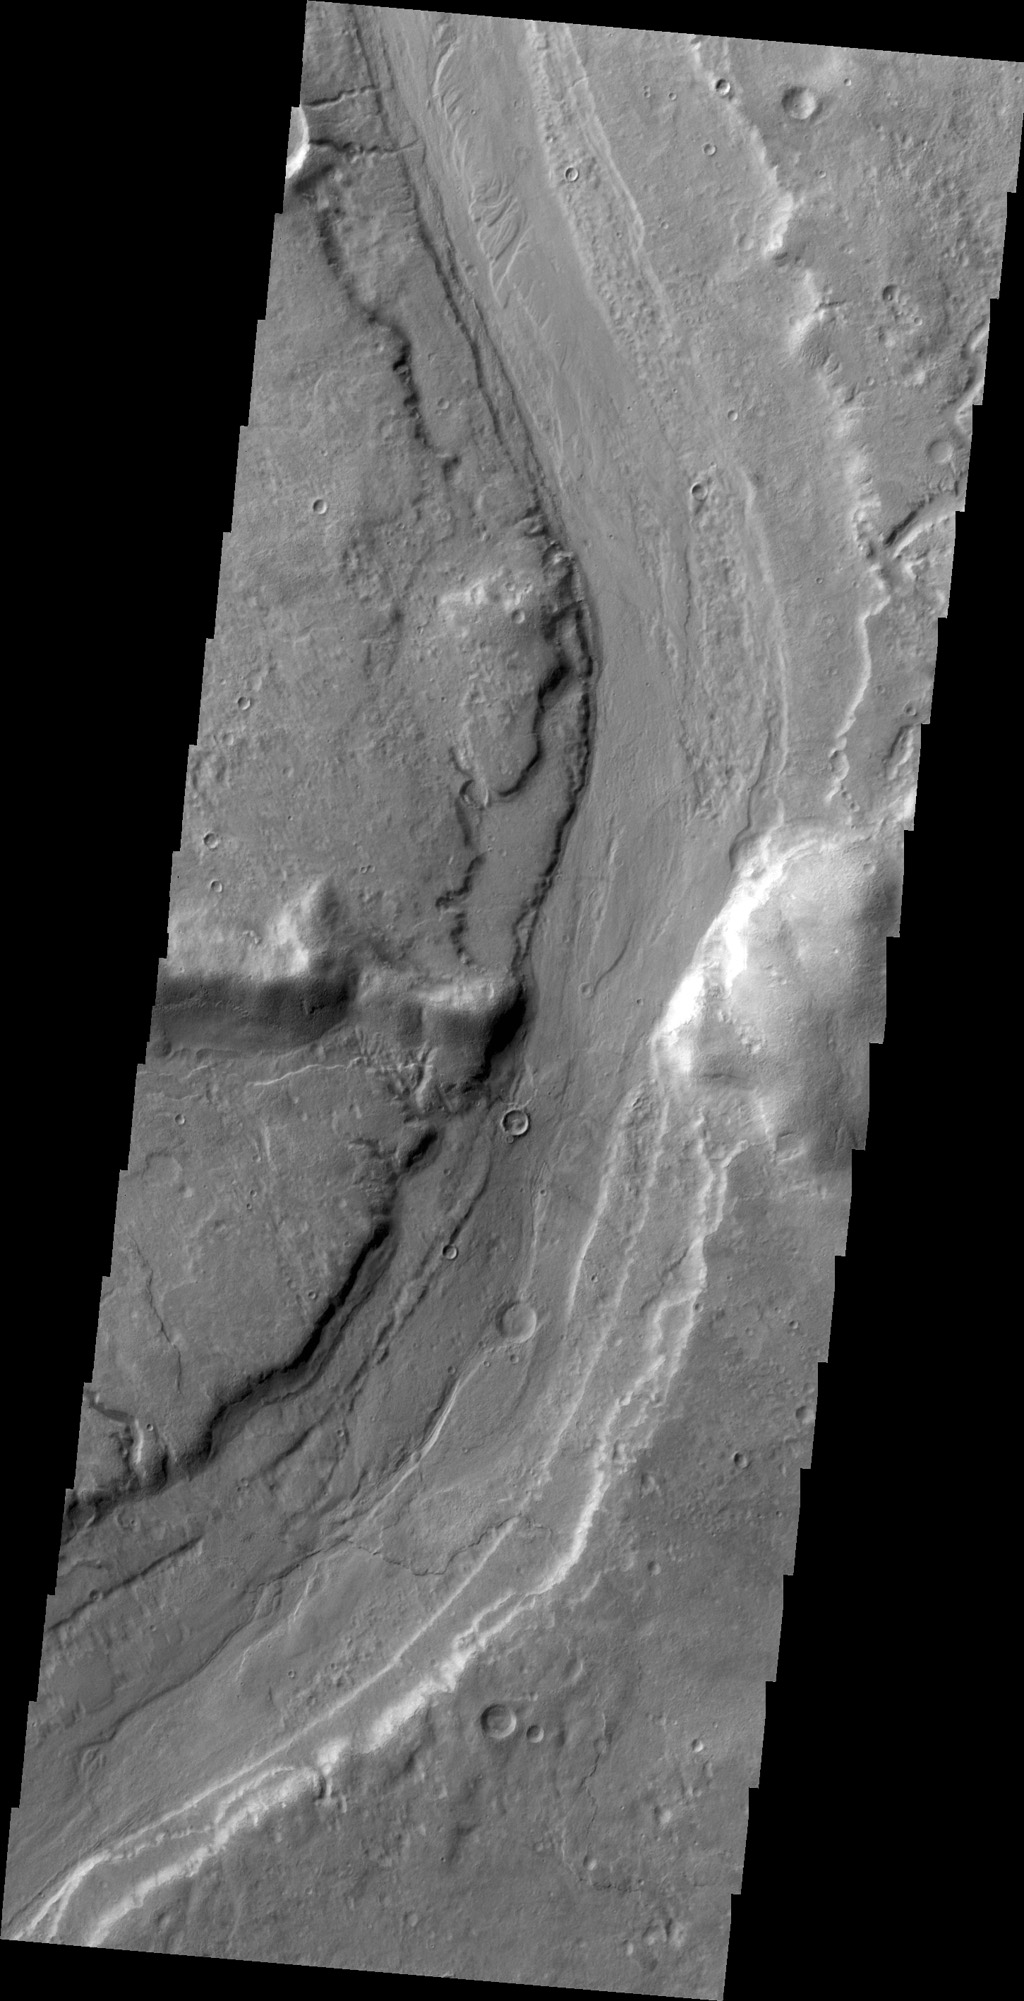 This image captured by NASA's 2001 Mars Odyssey spacecraft shows Reull Vallis where it cuts through the rim of Lipik Crater.